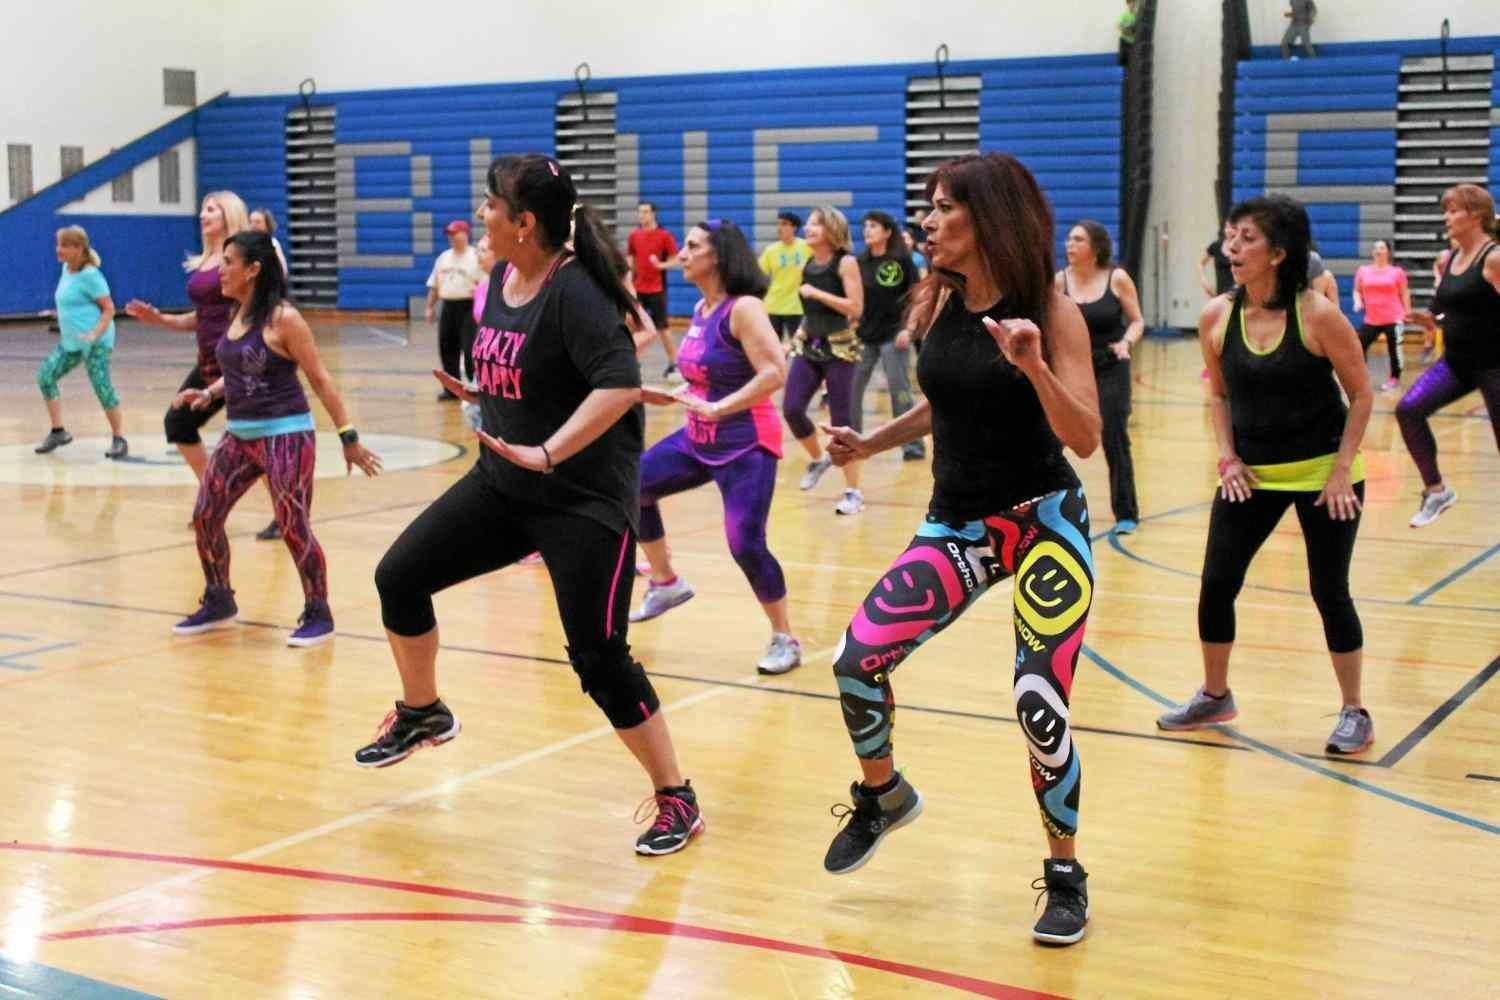 Zumbathon charity event to raise money for American Diabetes Association